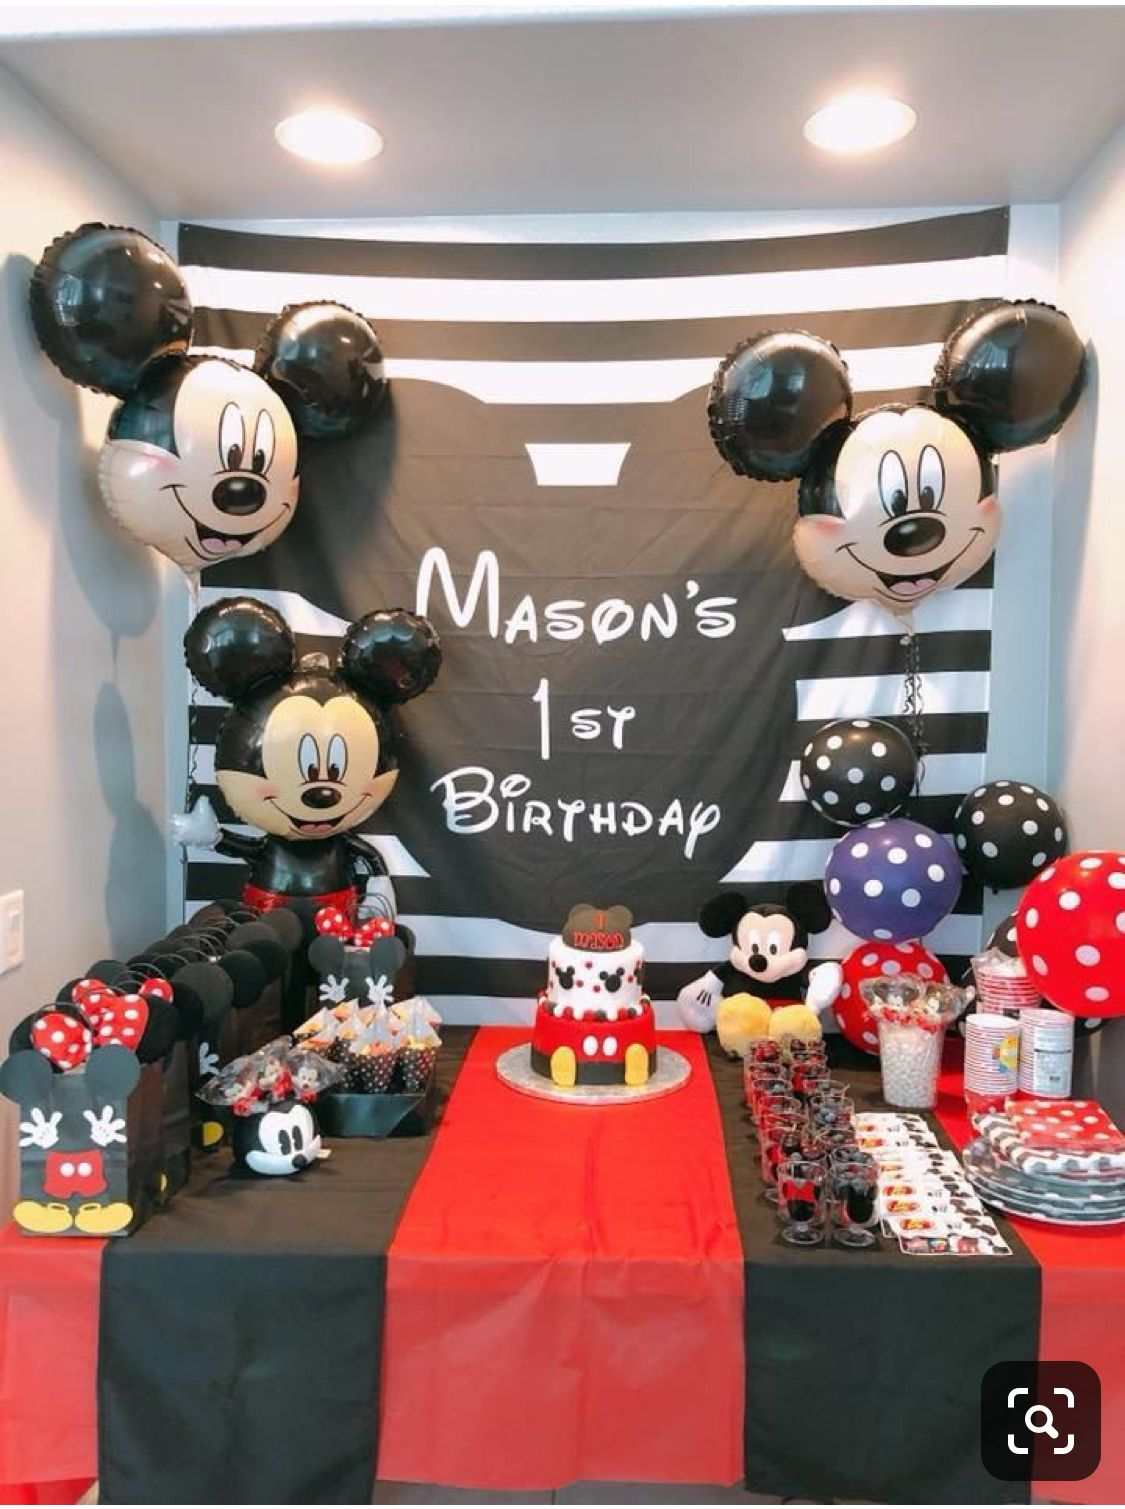 Pin By Abby Aguilar On Birthday Party Themes Mickey Mouse Birthday Party Mickey Mouse Birthday Decorations Mickey Mouse Clubhouse Birthday Party